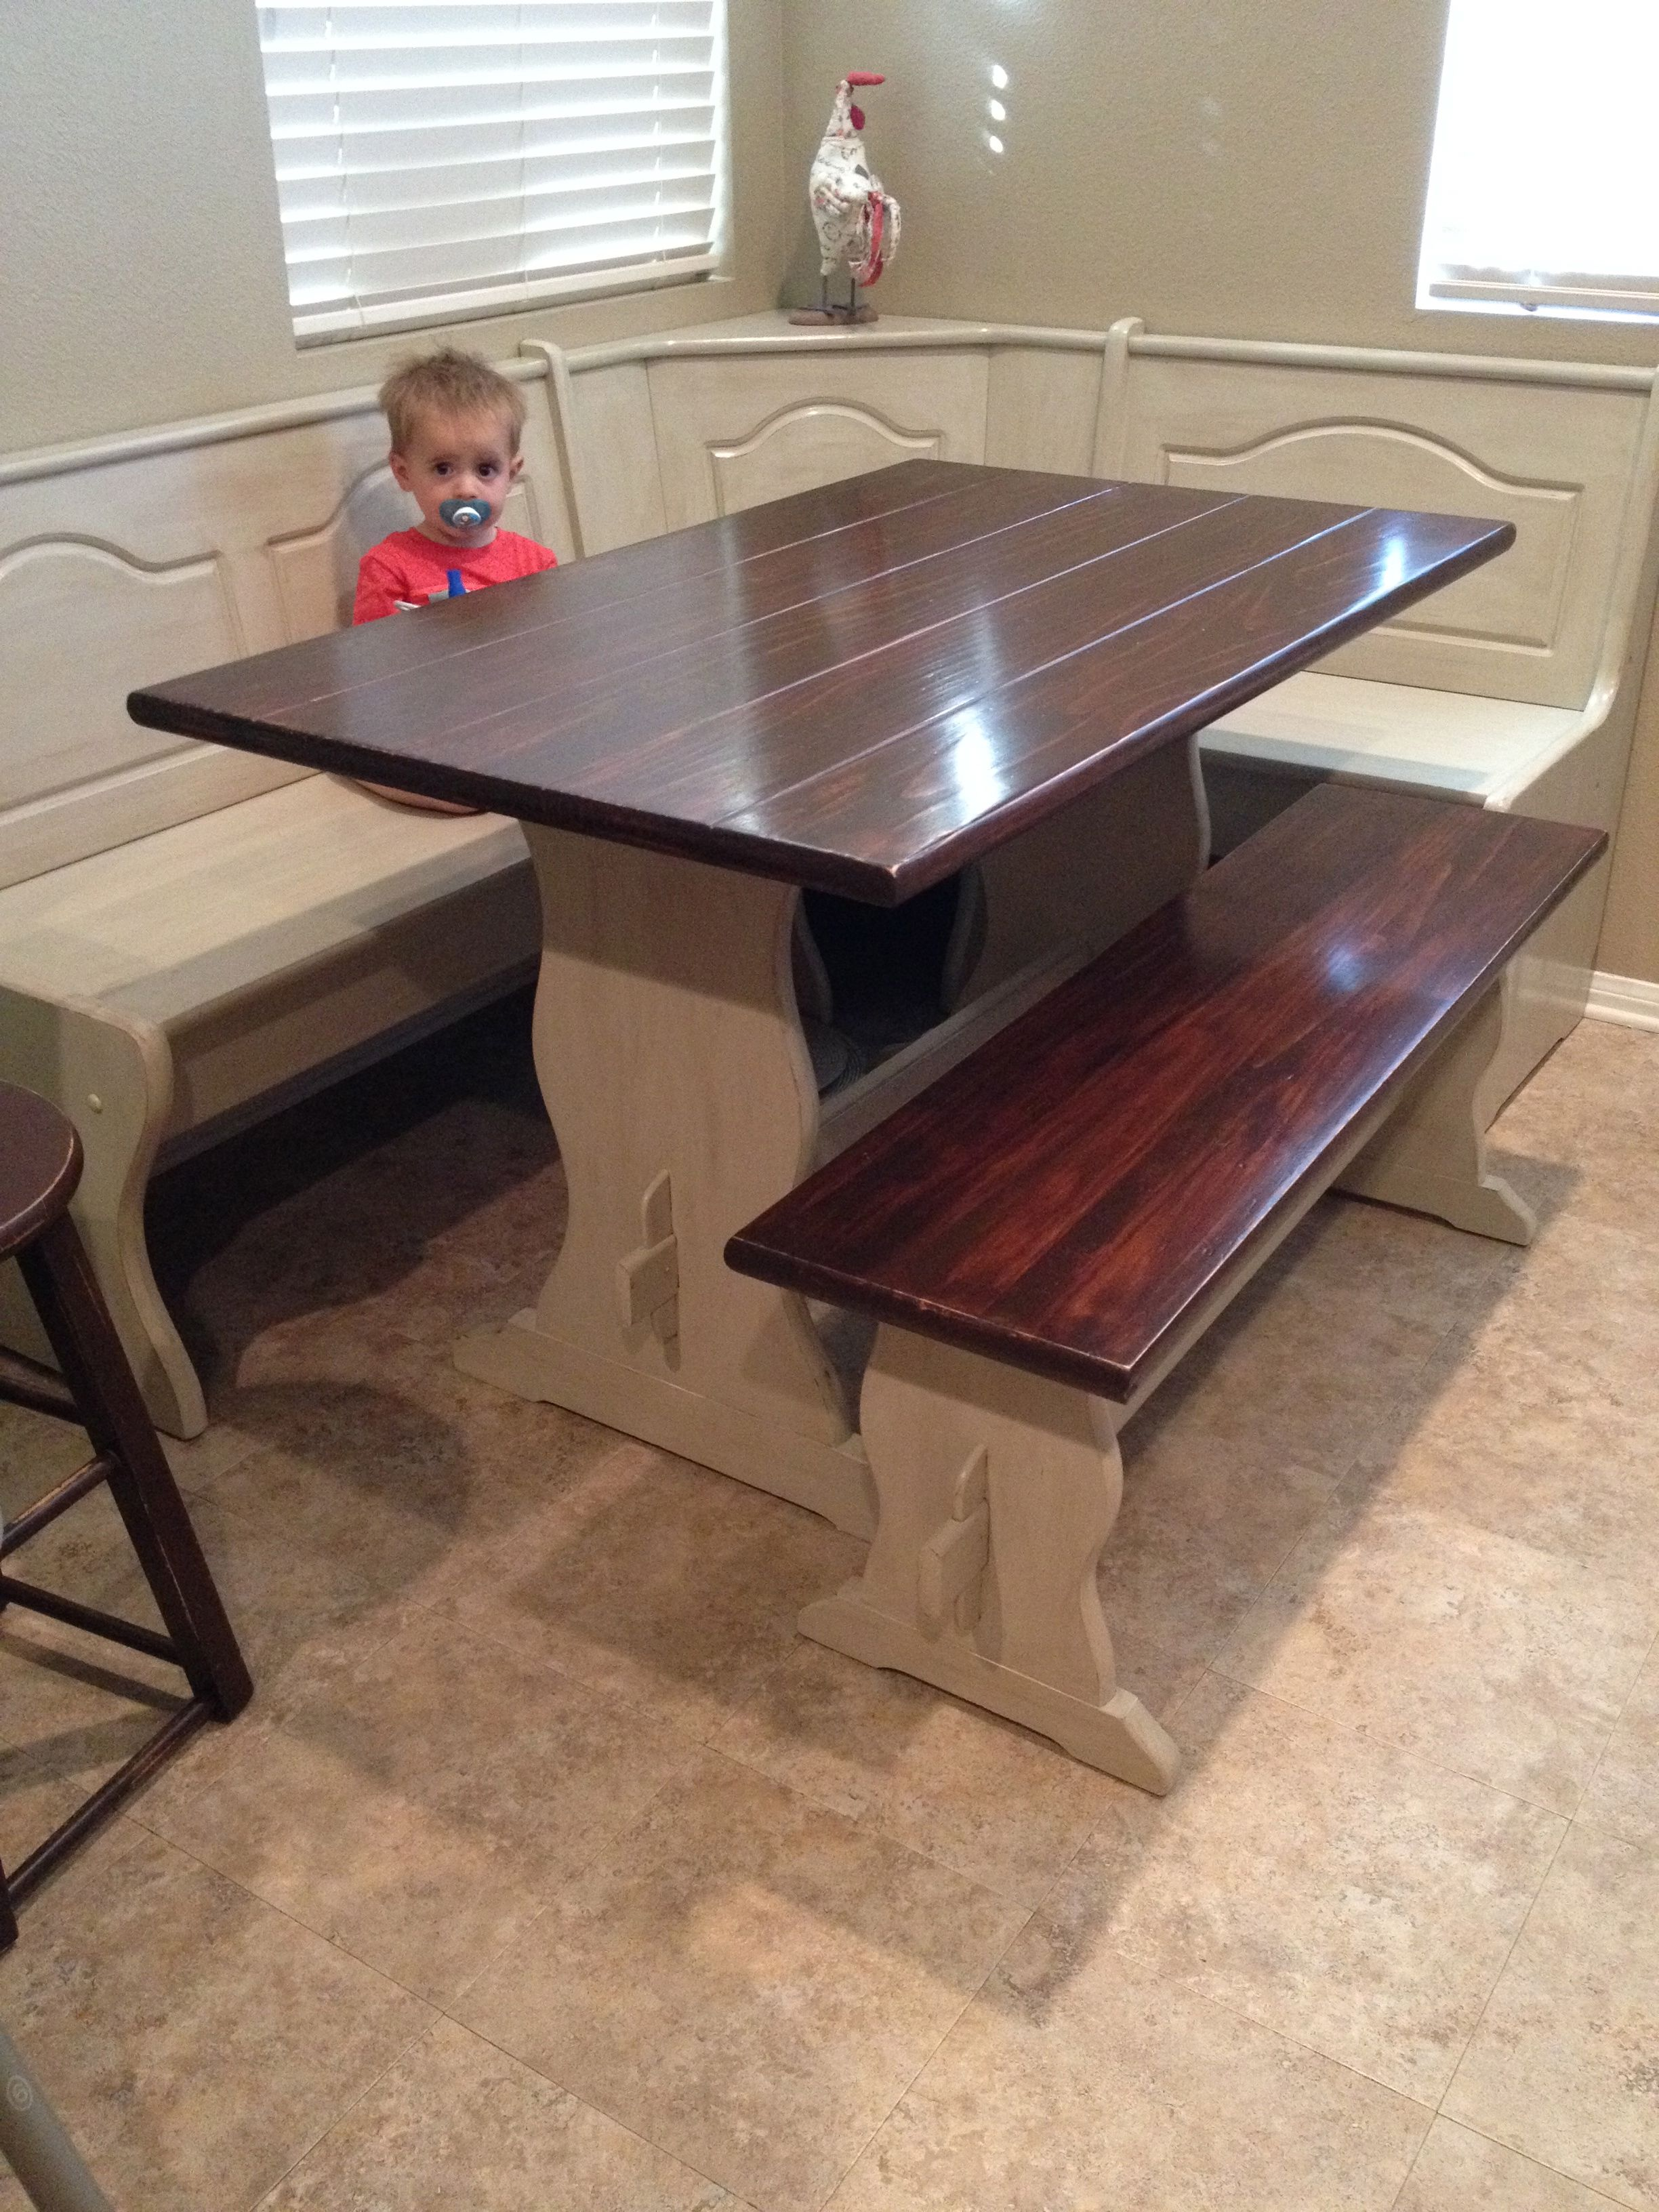 Kitchen table with bench seating and chairs  DIY Painted stained kitchen table booth banquette nook  corner